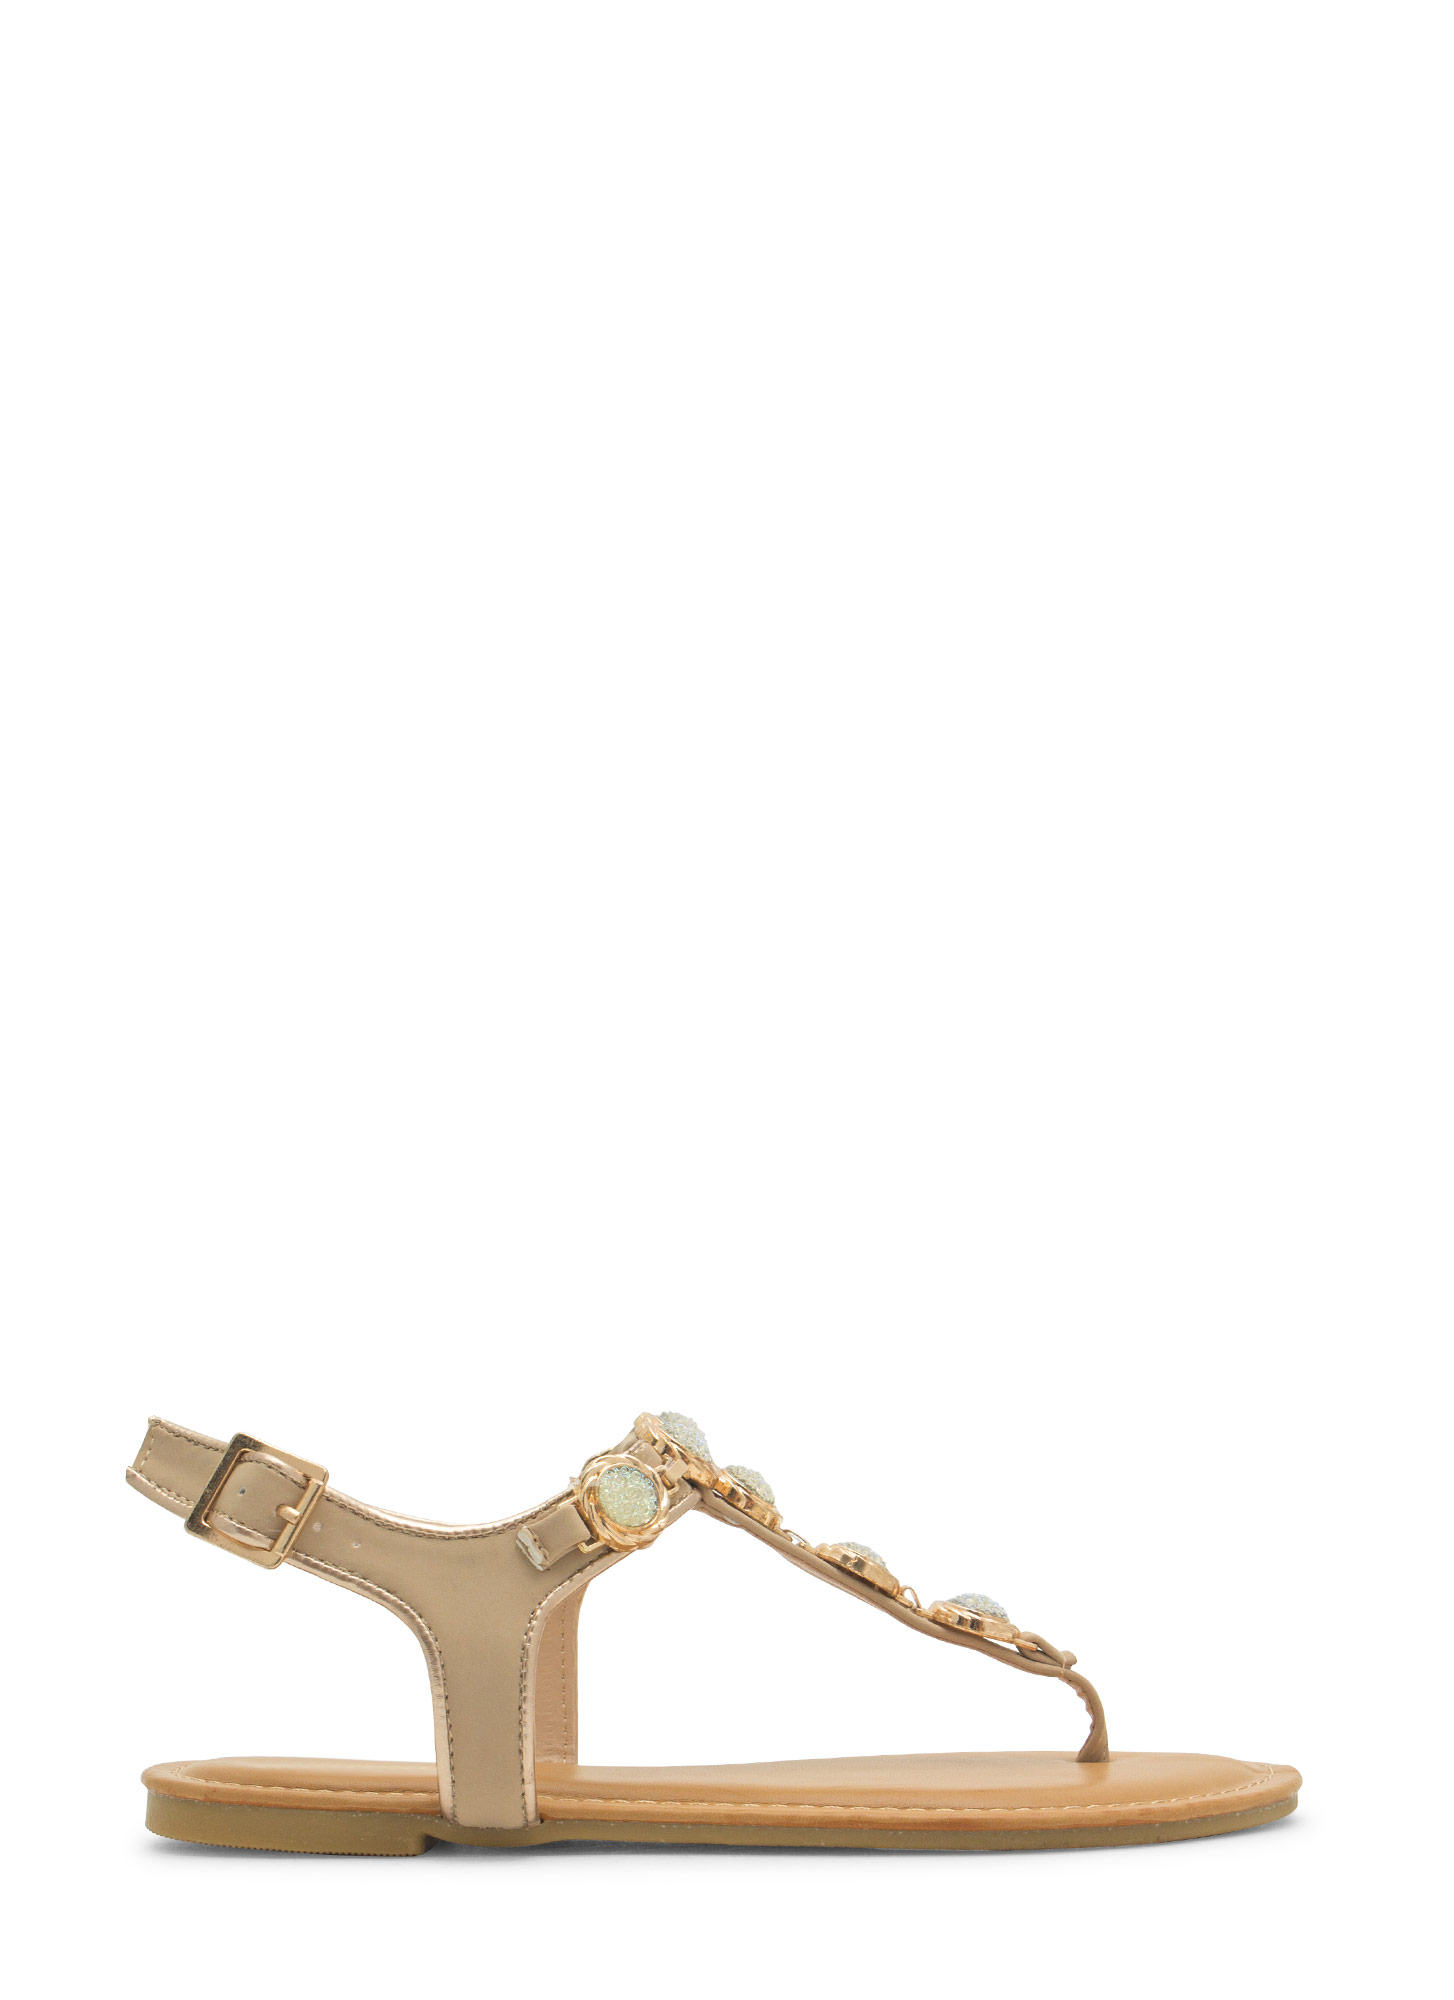 Bejeweled Crystalline T-Strap Sandals NUDE